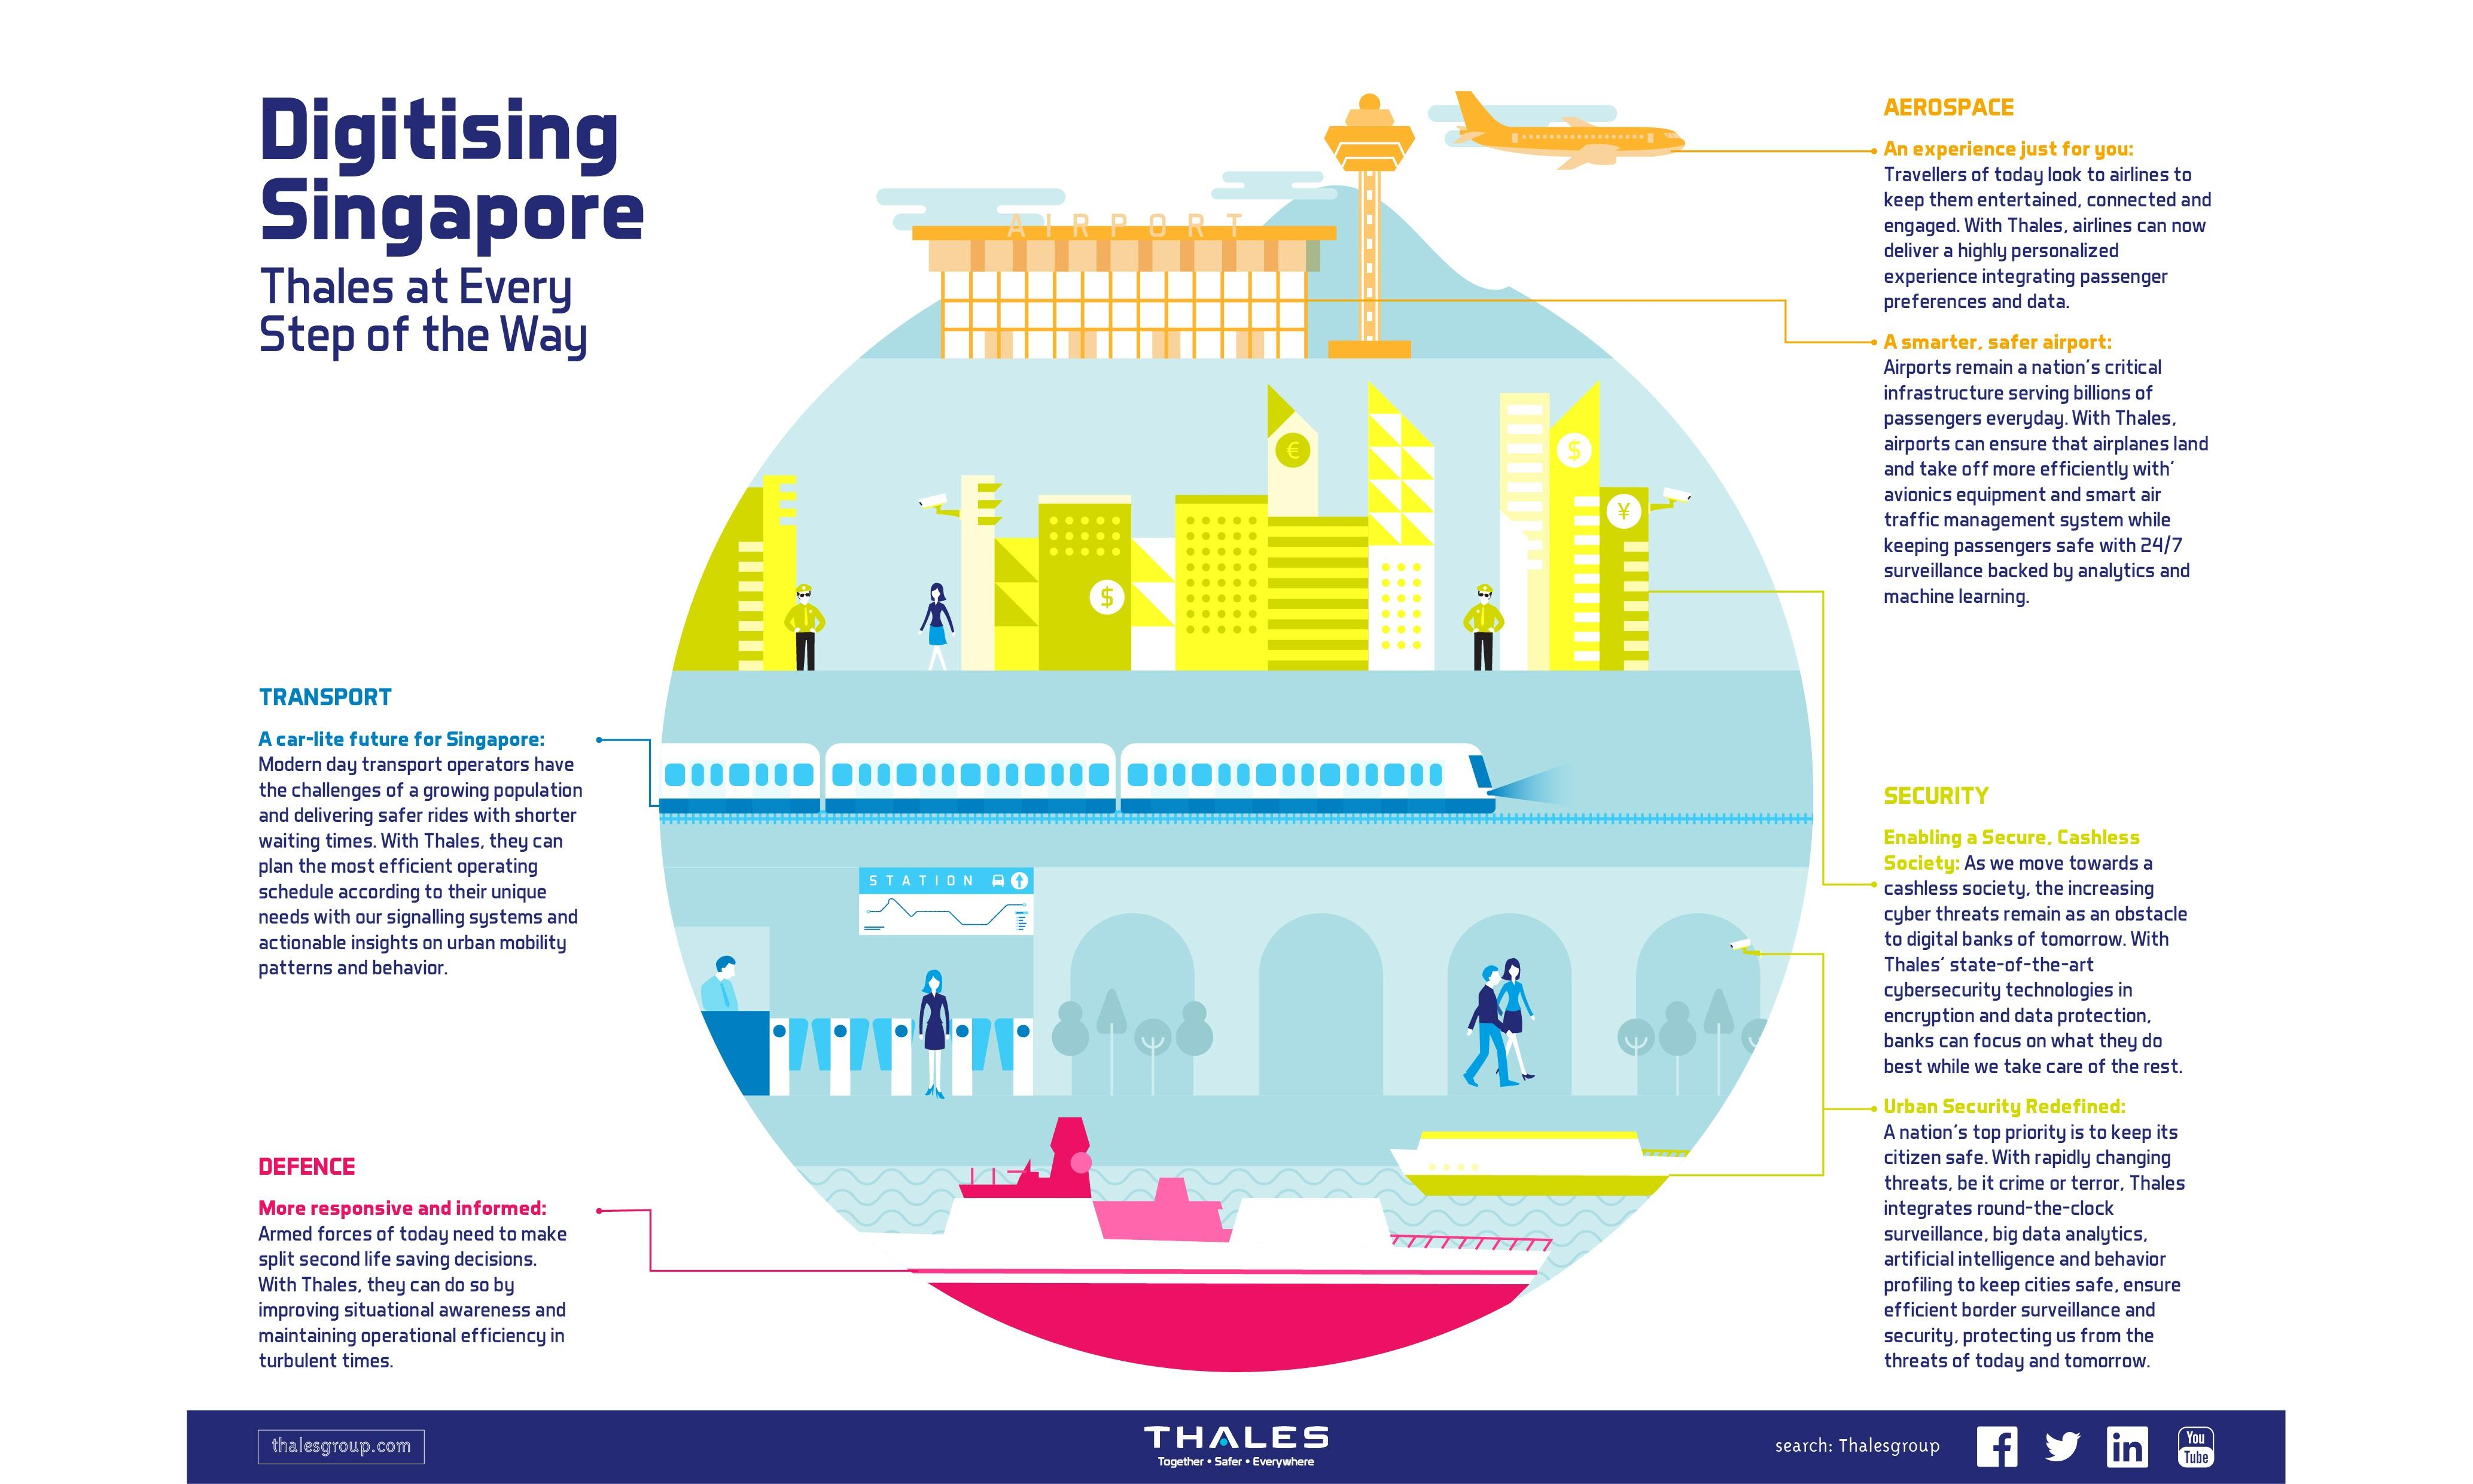 How Singapore is relying on Thales for its Digital Transformation - Thalesgroup